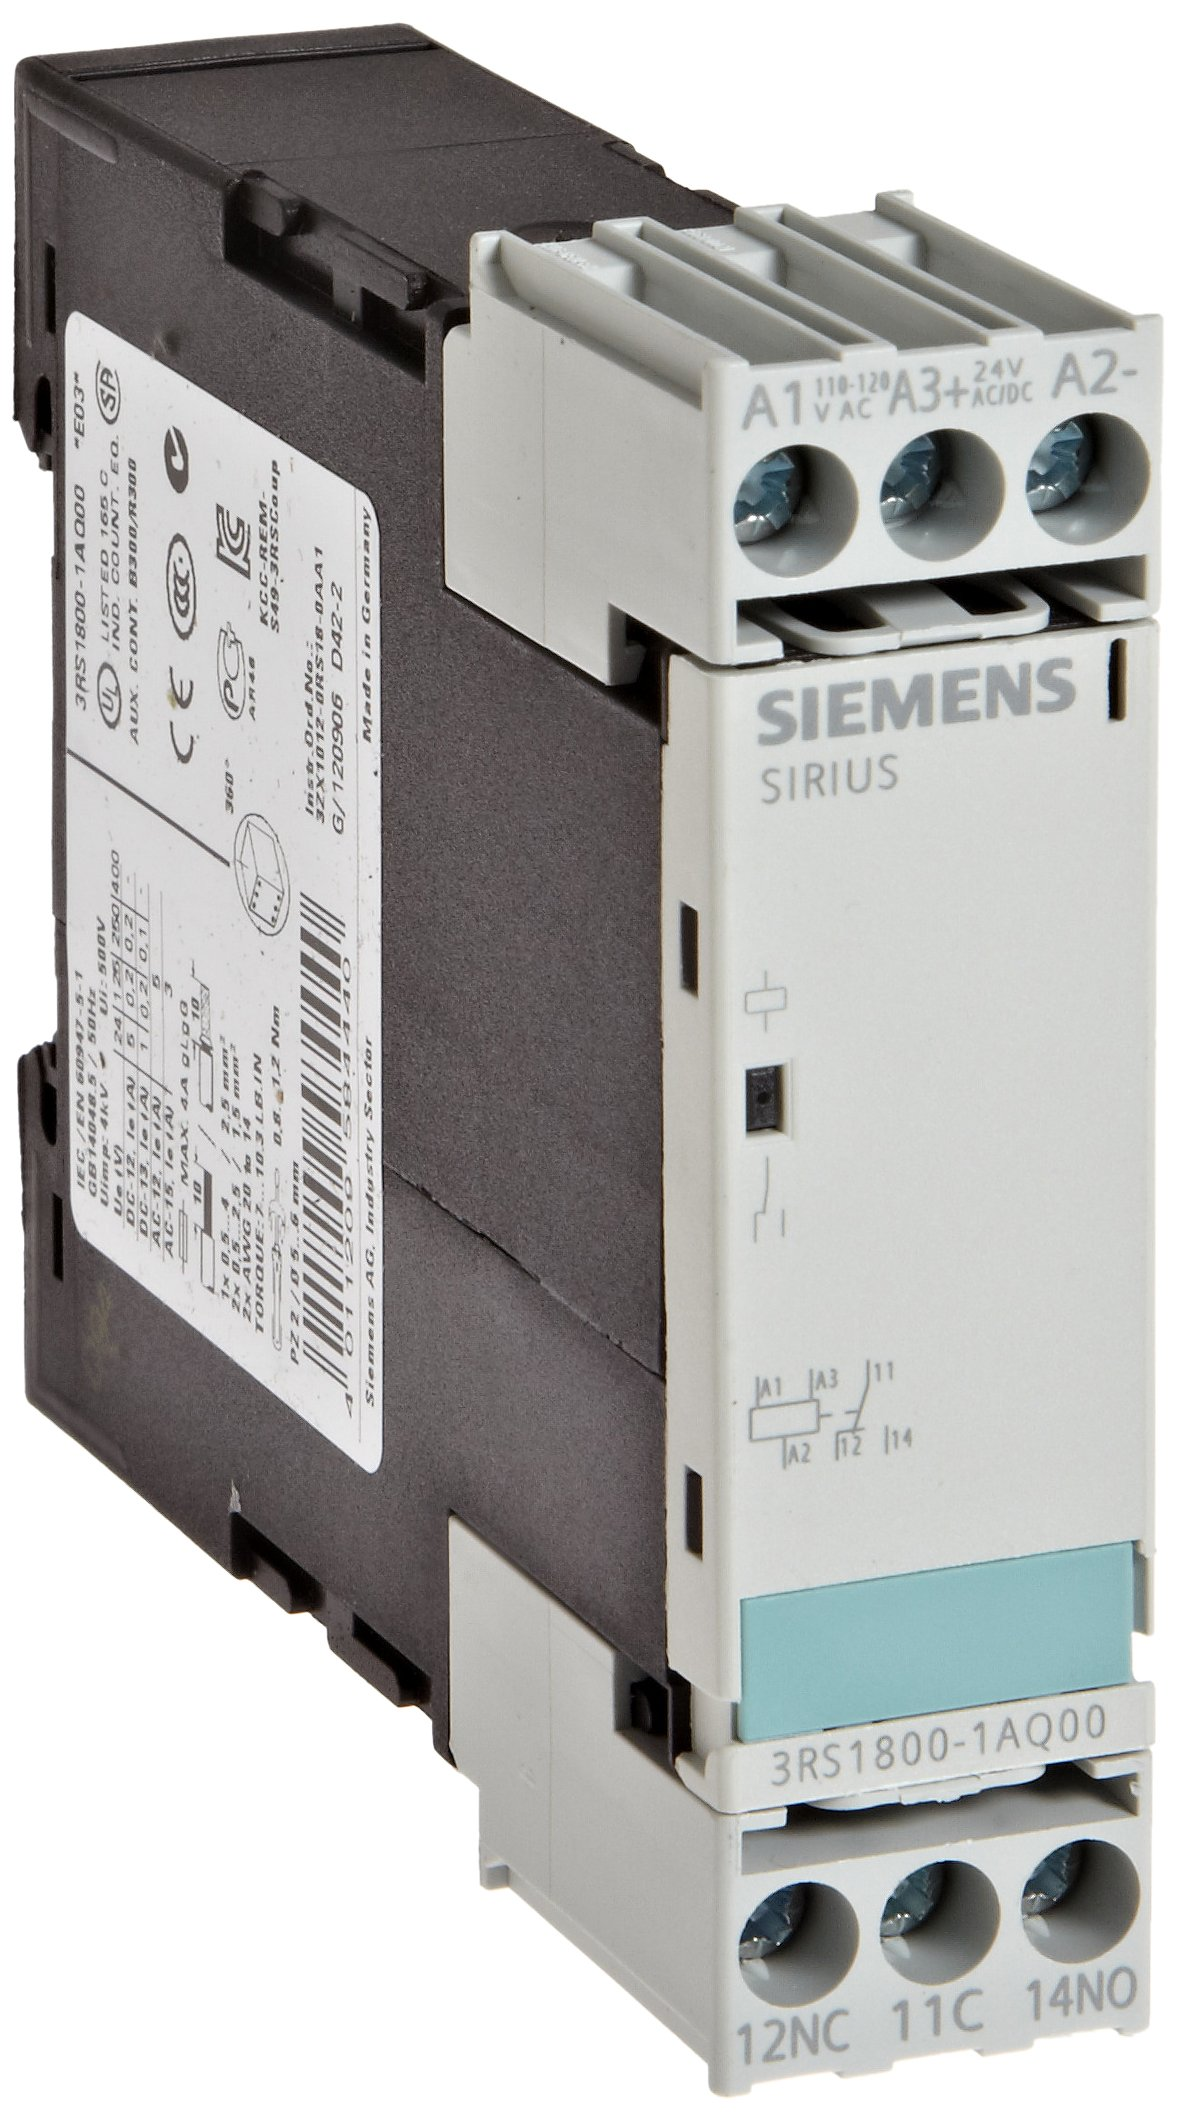 Siemens 3RS18 00-1AQ00 Interface Relay, Rugged Industrial Enclosure, Screw Terminal, 22.5mm Width, 1 CO Contacts, 24VAC/VDC and 110-120VAC Control Supply Voltage